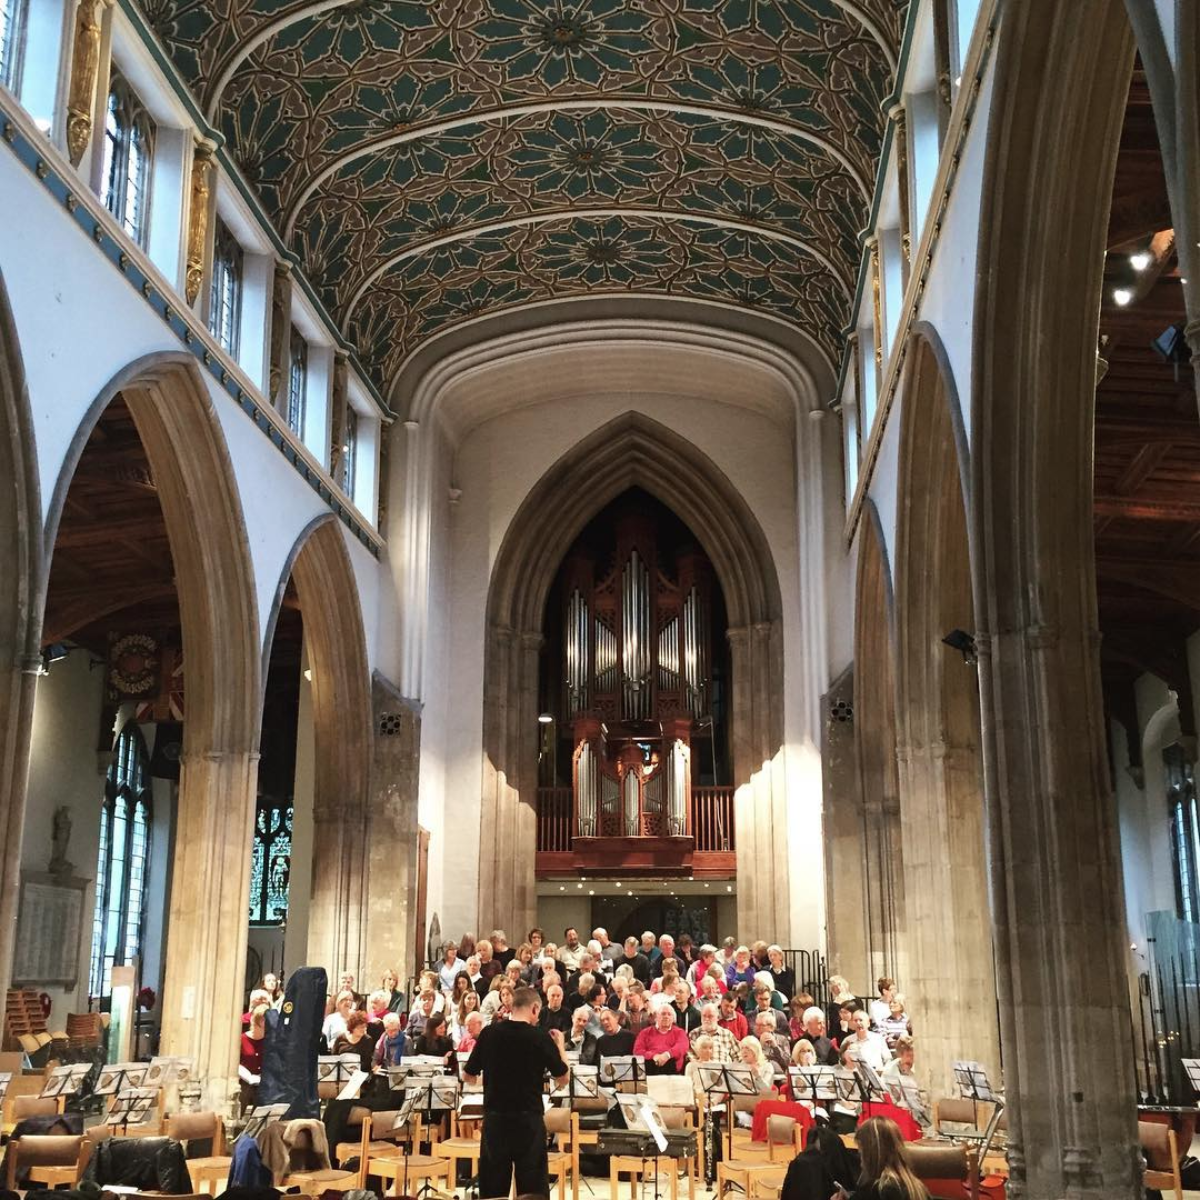 Elgar's 'The Dream of Gerontius' - Had a lovely time playing with Ensemble OrQuestra at the Chelmsford Cathedral. Met some great people, including another Canadian violist from the East Coast. 'Dream of Gerontius' is a large choral work with soloists, and the best I can describe it is a very English pastorale oratorio with a host of demons thrown in.